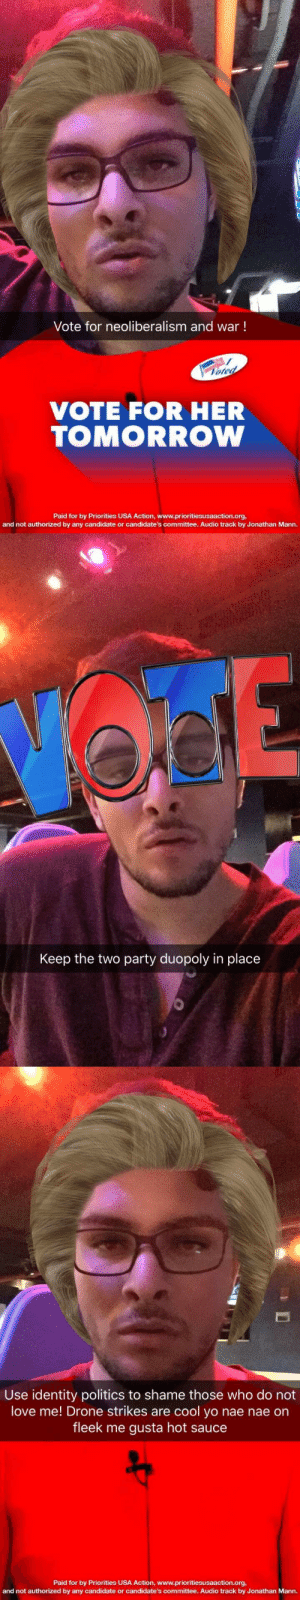 Drone, Love, and Nae Nae: Vote for neoliberalism and war!  oted  VOTE FOR HER  TOMORROW  Paid for by Priorities USA Action, www.prioritiesusaaction.org,  and not authorized by any candidate or candidate's committee. Audio track by Jonathan Mann.   Keep the two party duopoly in place   Use identity politics to shame those who do not  love me! Drone strikes are cool yo nae nae on  fleek me gusta hot sauce  Paid for by Priorities USA Action, www.prioritiesusaaction.org,  and not authorized by any candidate or candidate's committee. Audio track by Jonathan Mann. too-moist-for-this:  c-bassmeow:  Madam president !   this is art